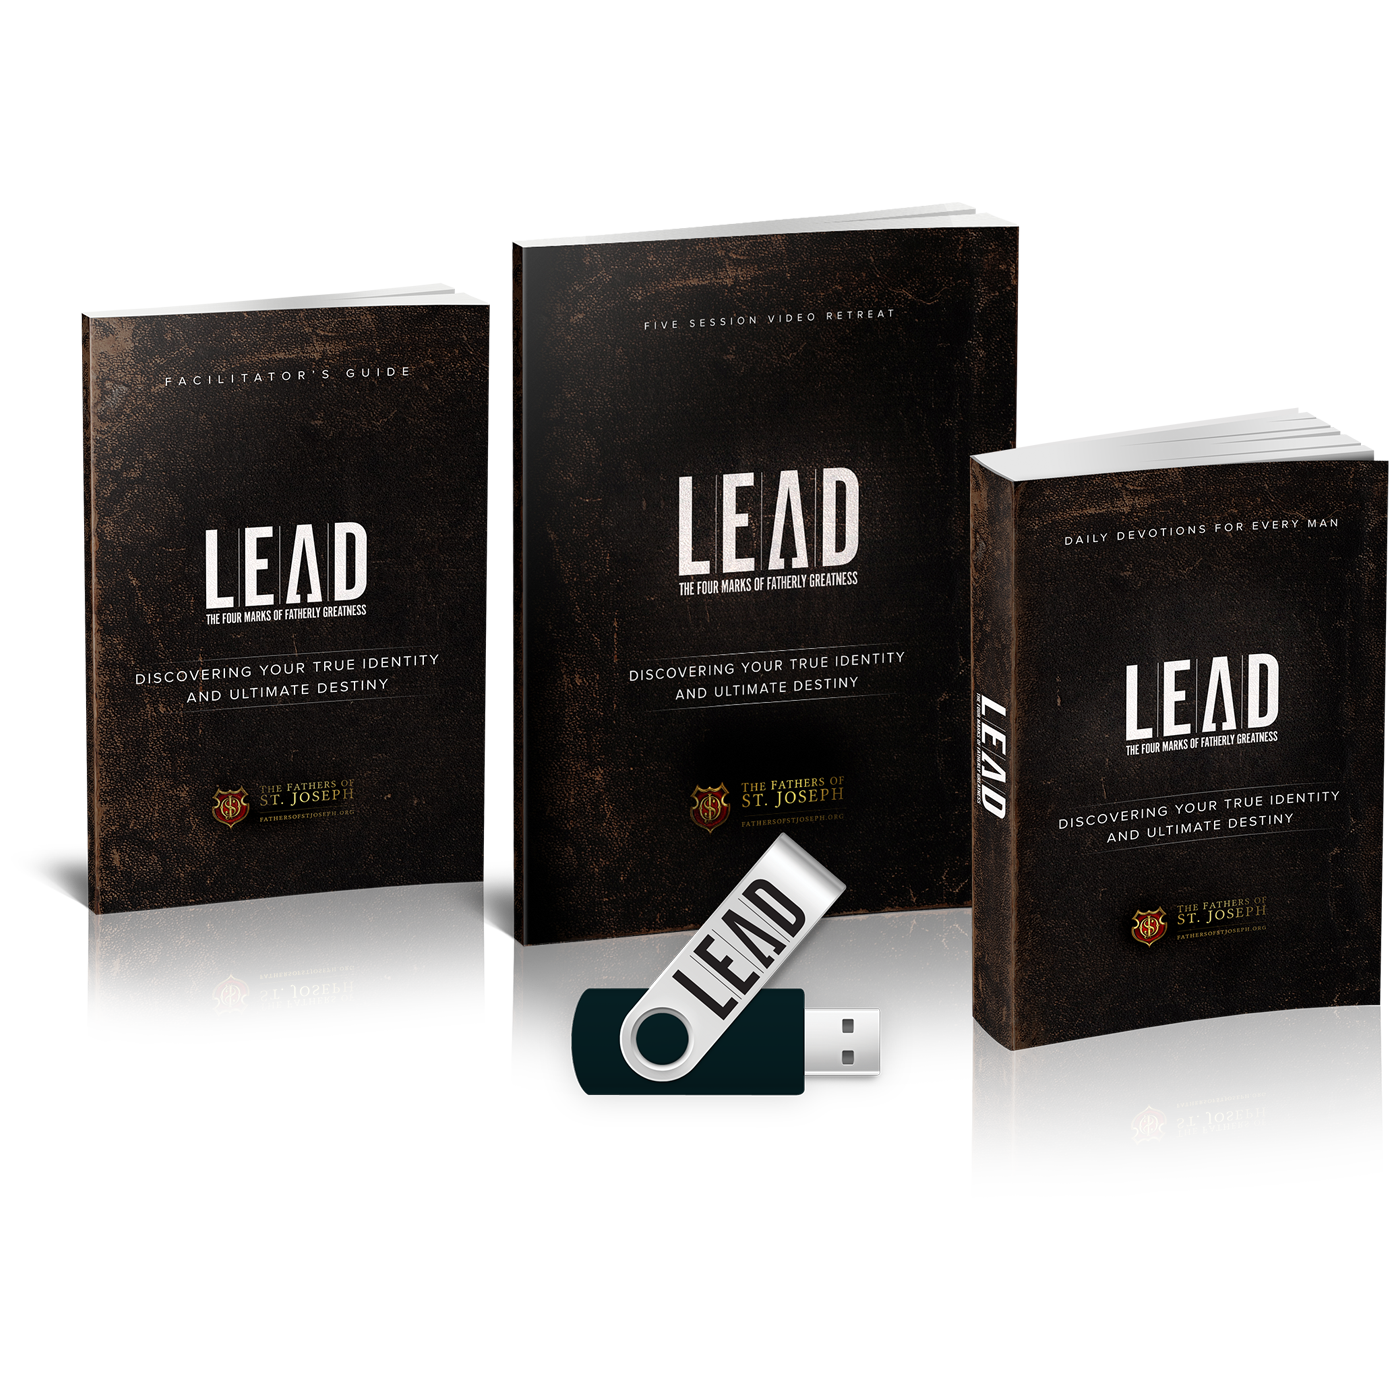 LEAD Men's Group Program